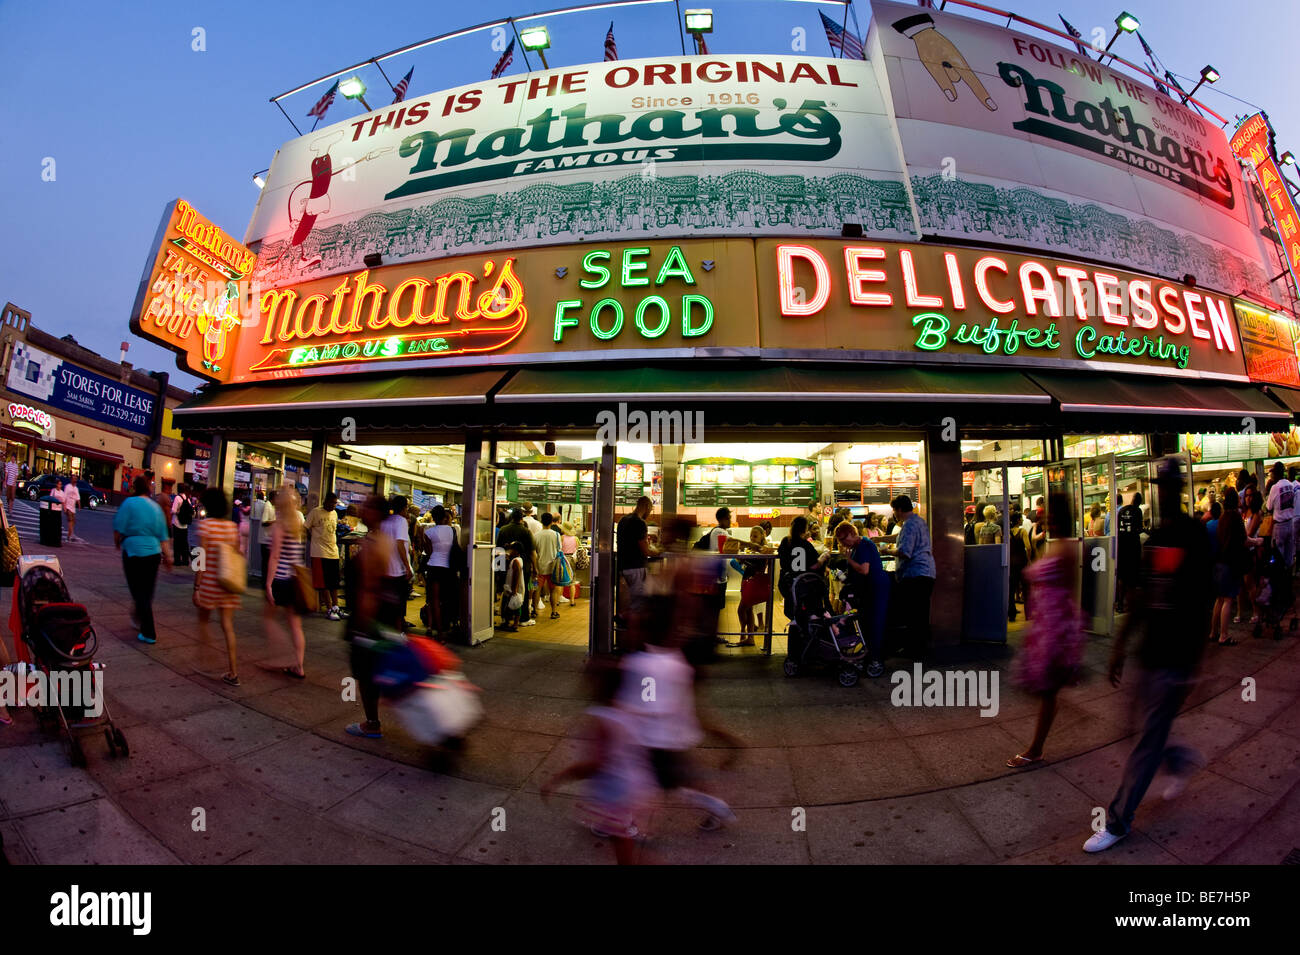 Summer evening at Nathan's hot dogs on Coney Island - Stock Image